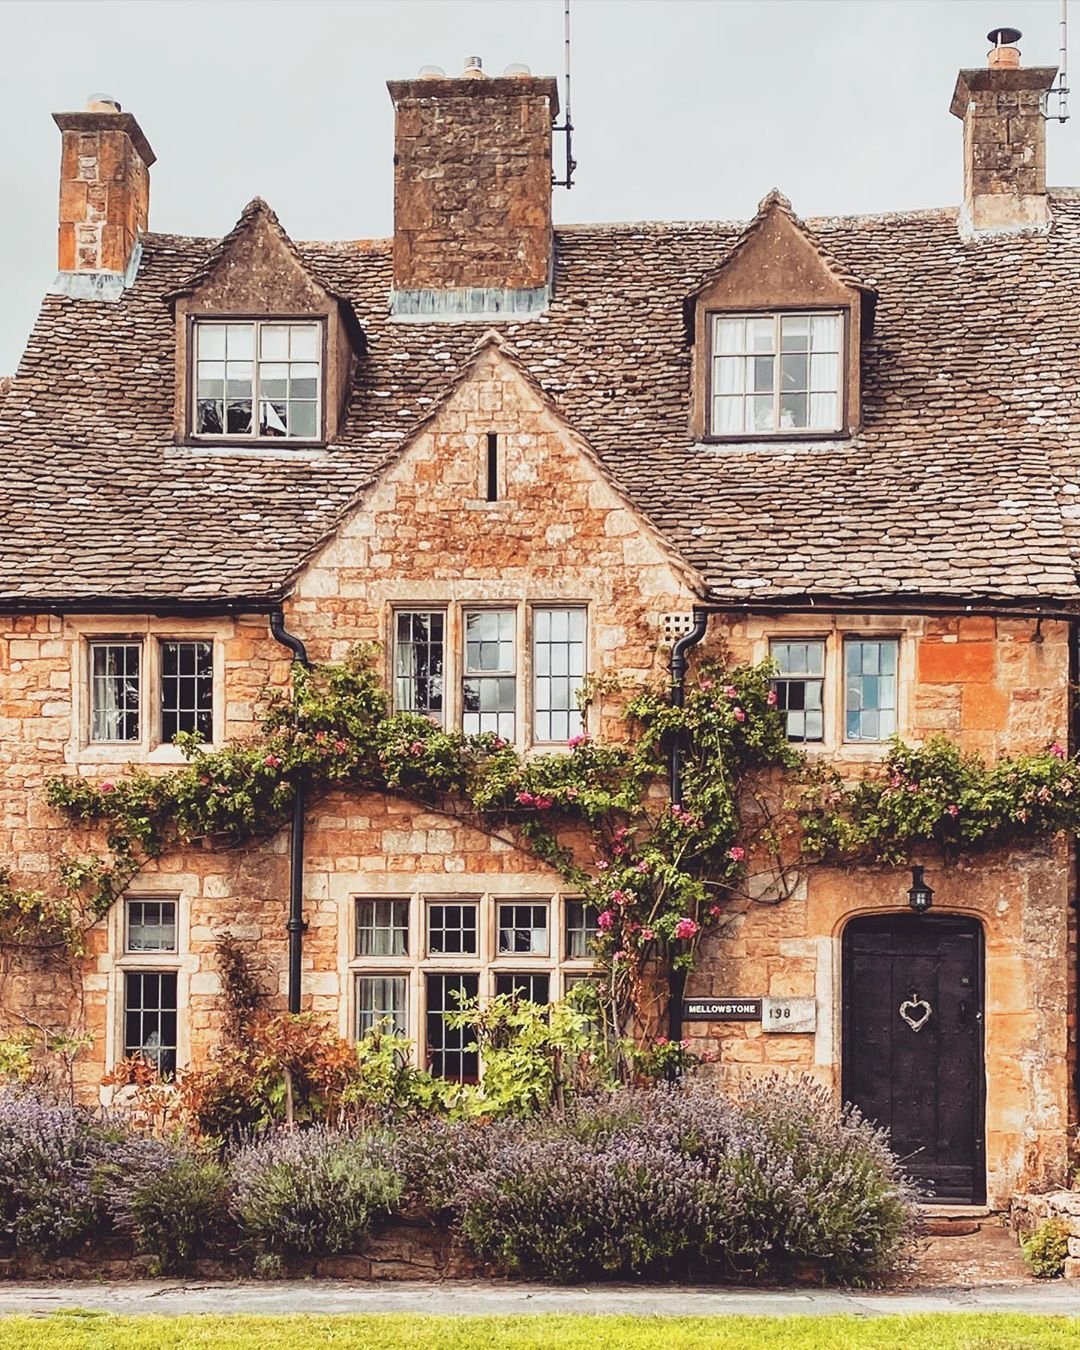 Annalise S Adventures Bath Annalisemaybath Instagram Foto S En Video S Cotswolds English Cottage House Styles